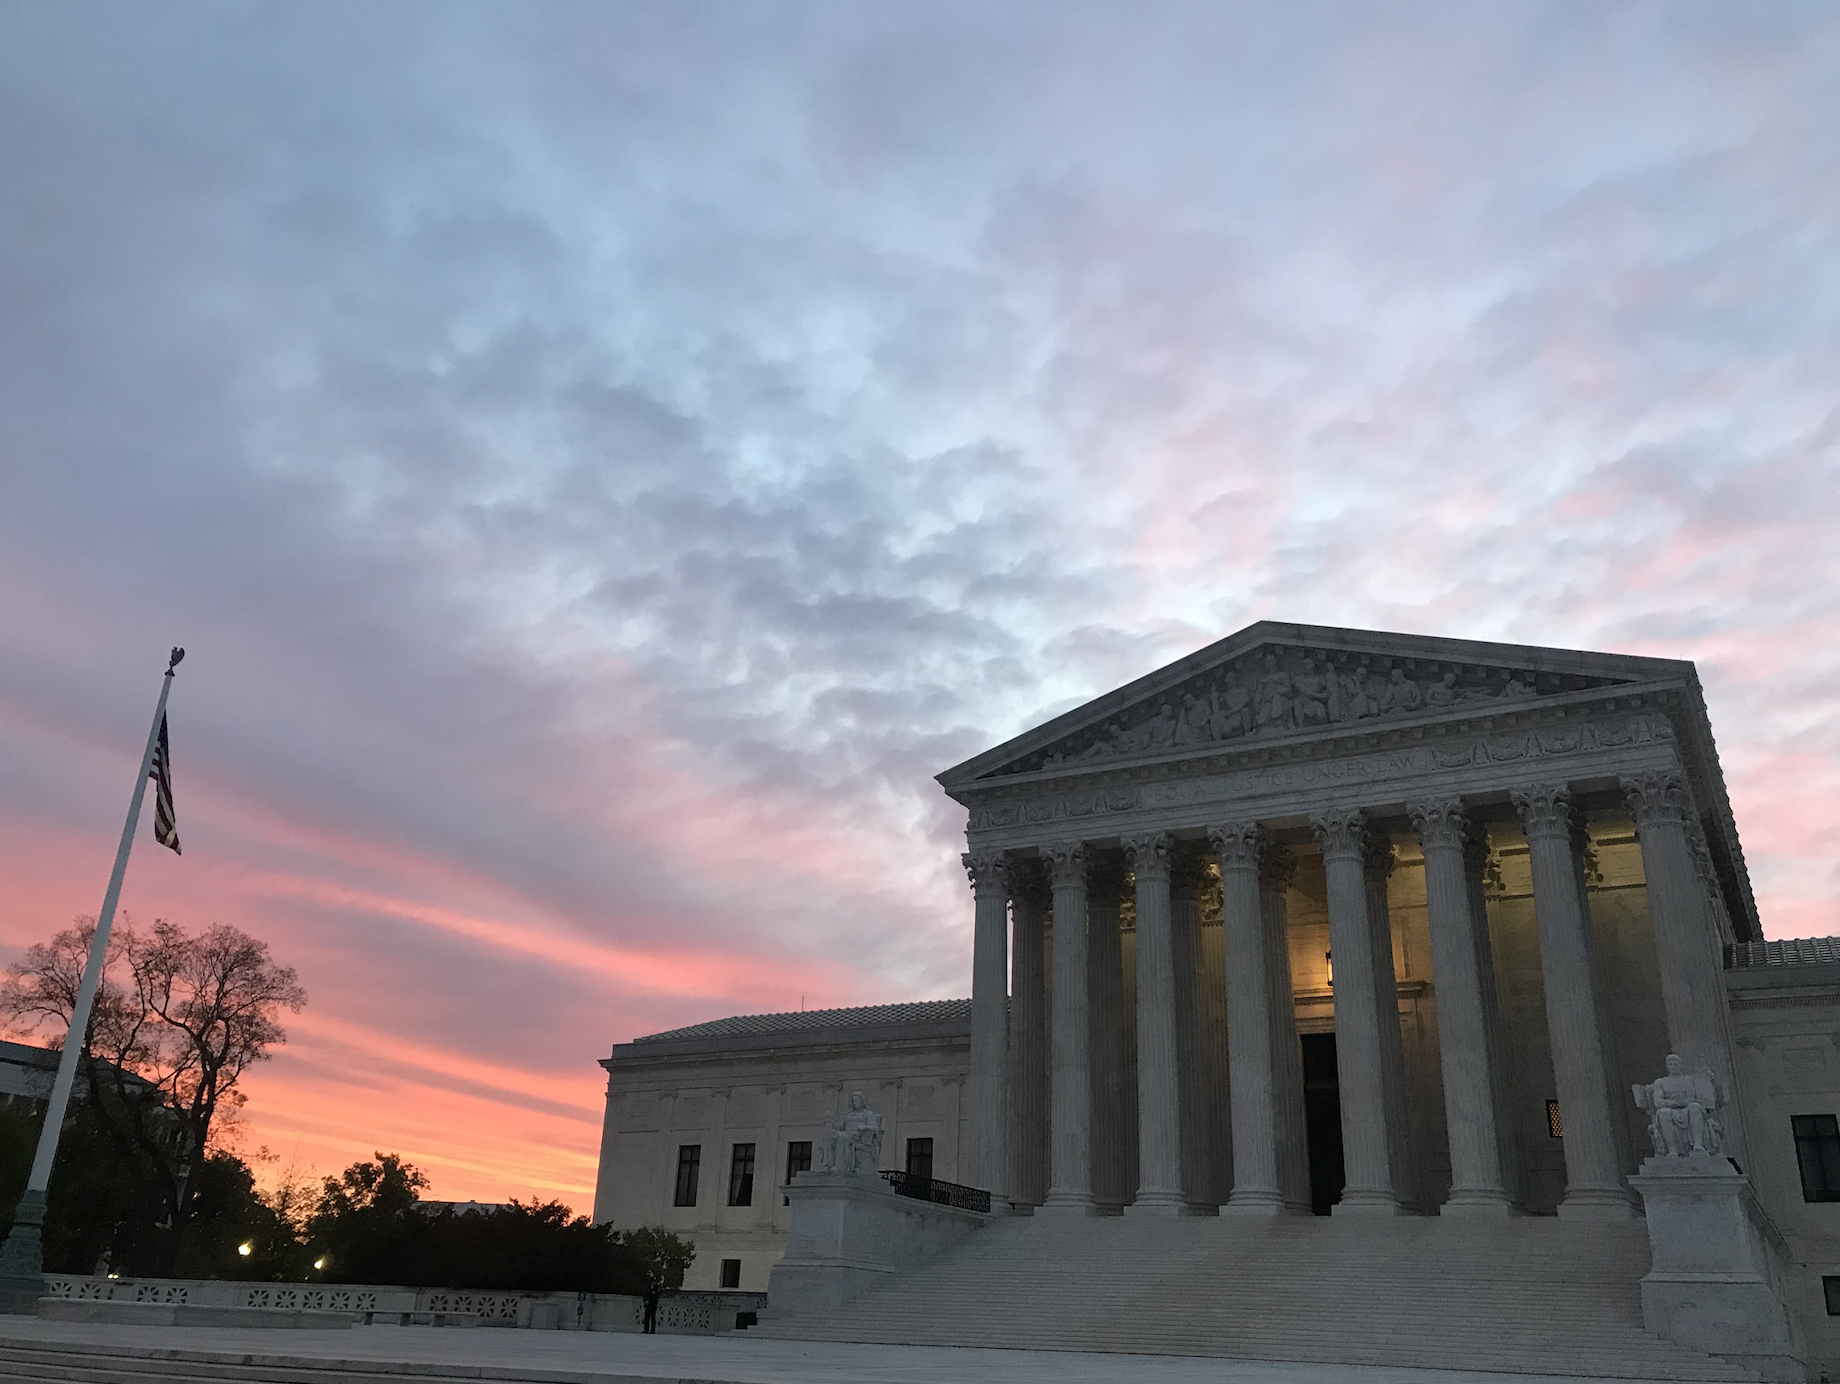 Image: The Supreme Court of the United States. (PC Courtney Douglas)